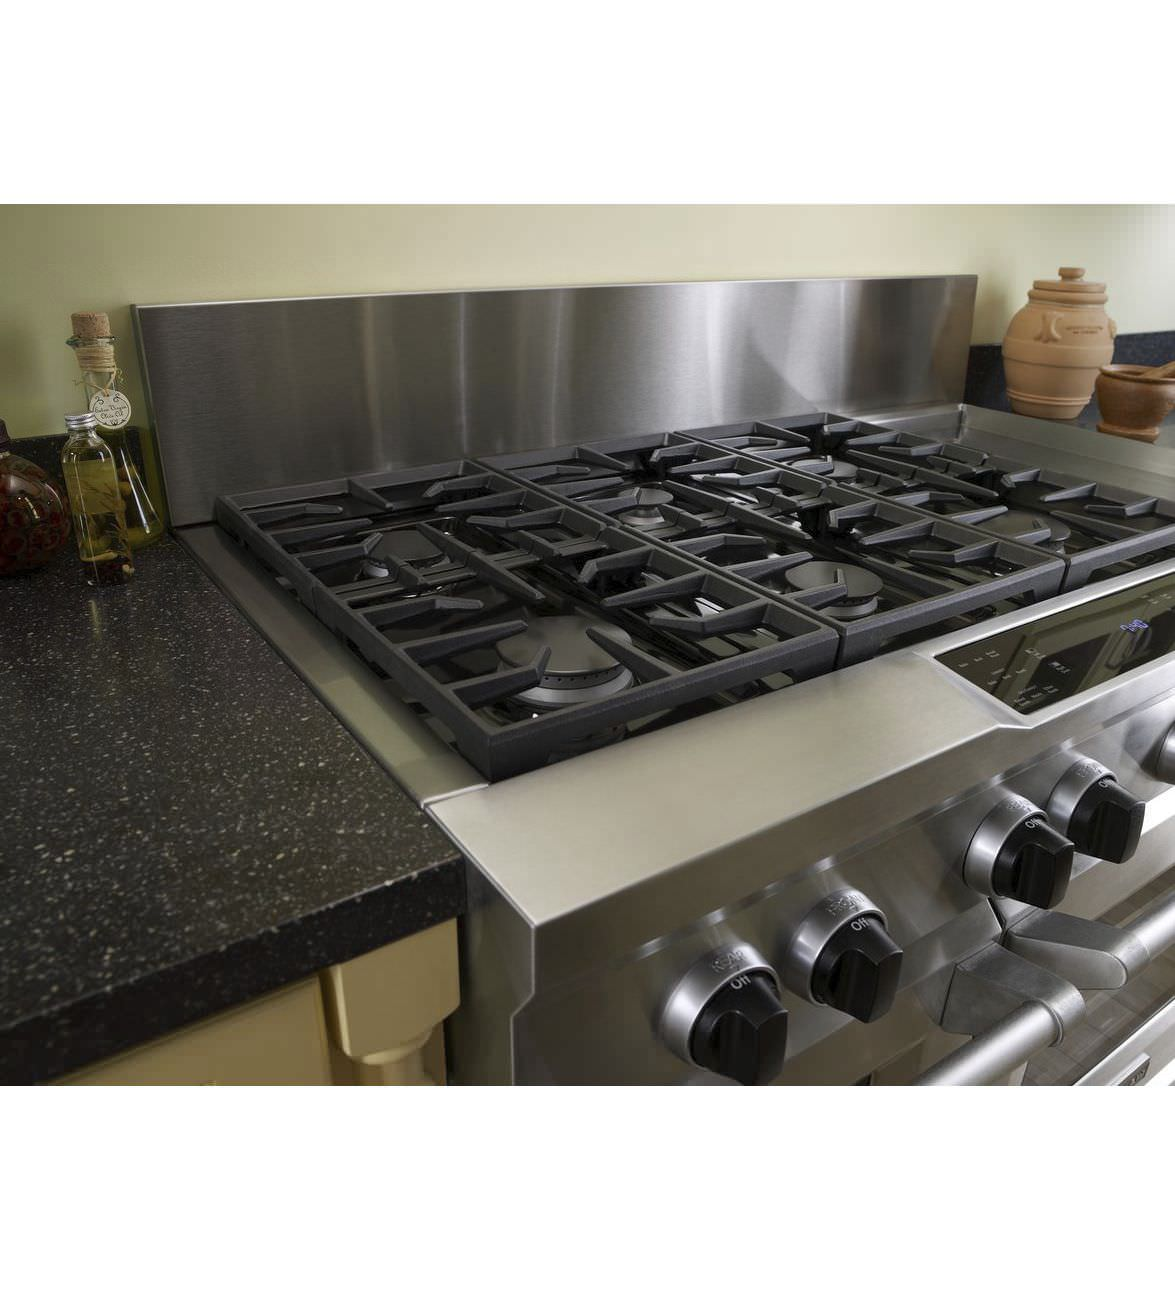 Gas Range Cooker. KDRS483VSS KitchenAid